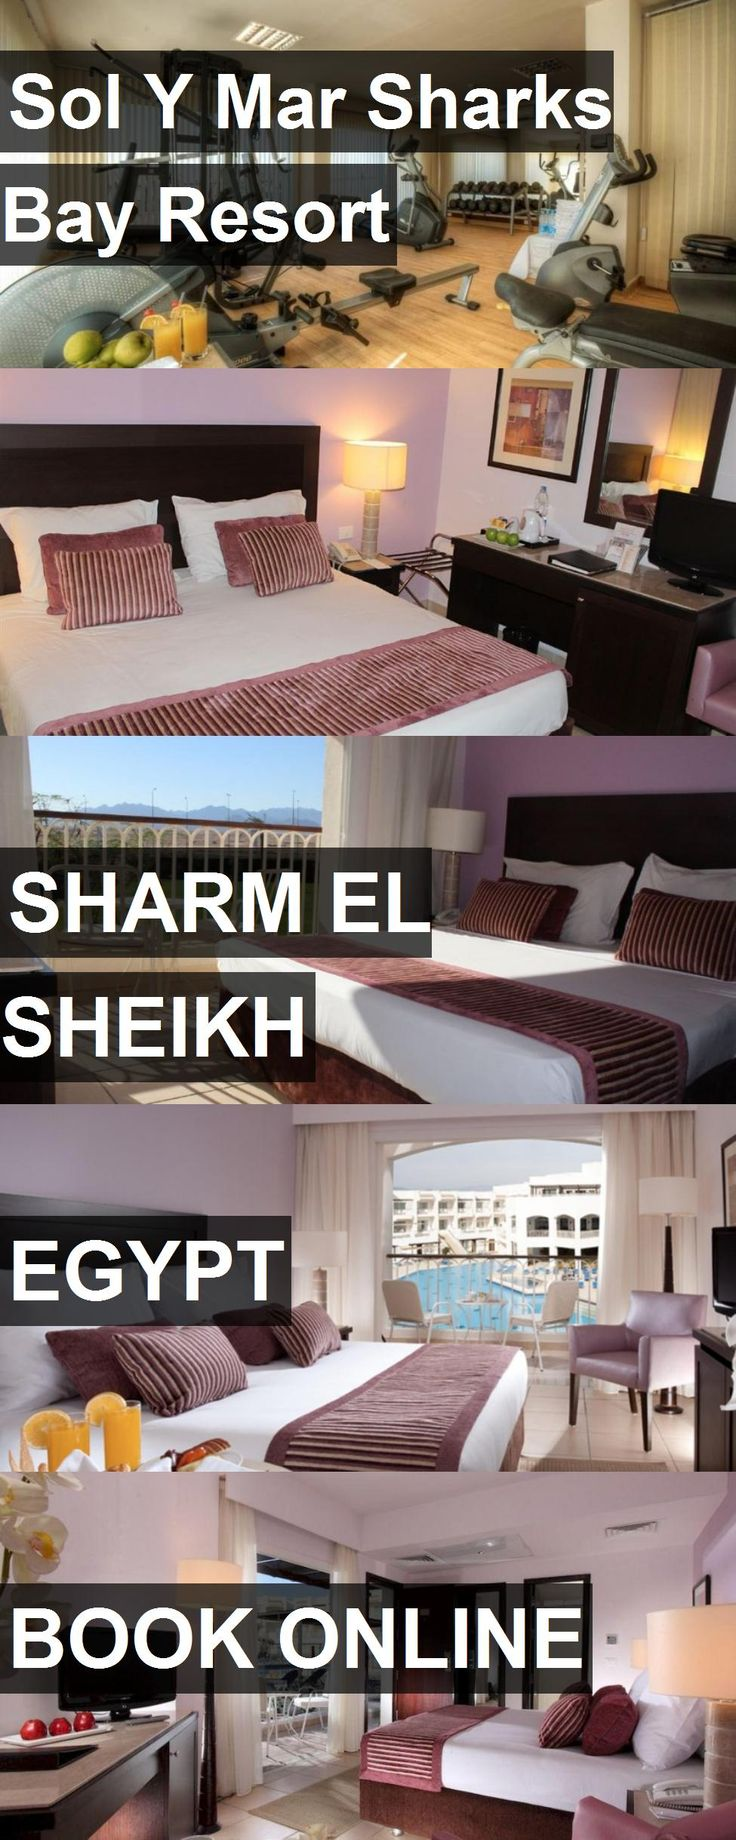 Hotel Sol Y Mar Sharks Bay Resort in Sharm el Sheikh, Egypt. For more information, photos, reviews and best prices please follow the link. #Egypt #SharmelSheikh #travel #vacation #hotel